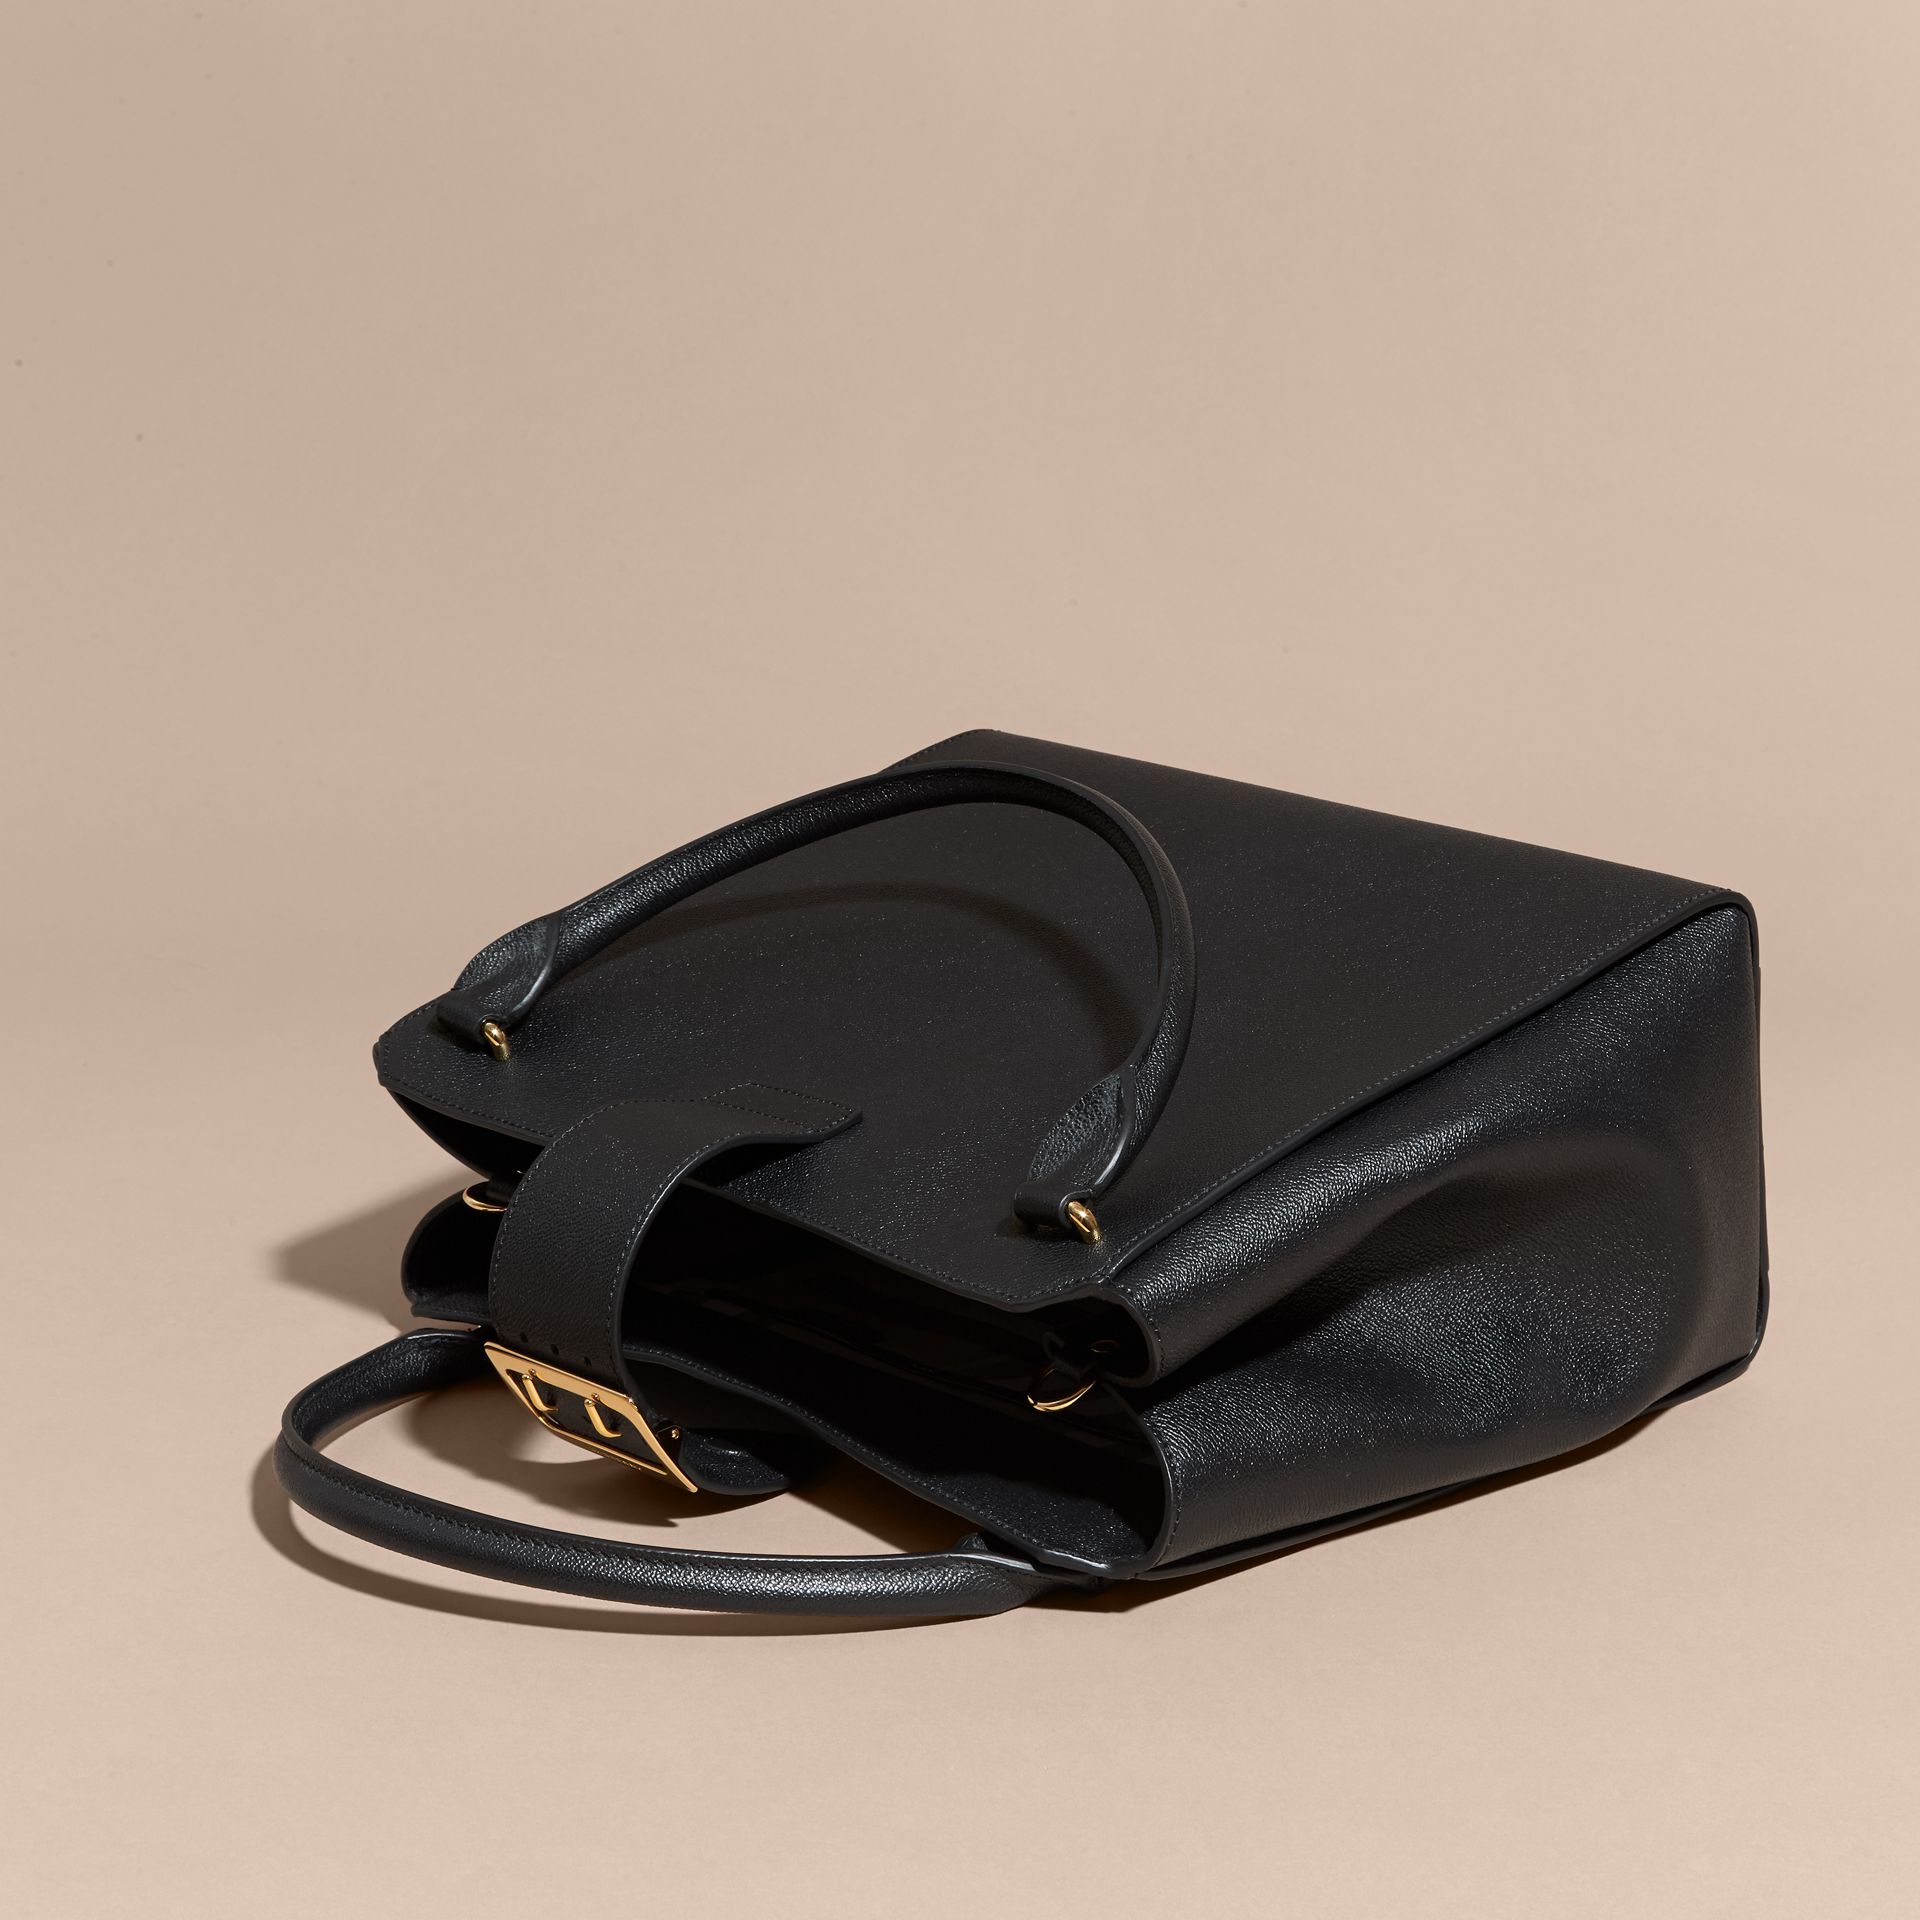 Black The Large Buckle Tote in Grainy Leather Black - gallery image 5